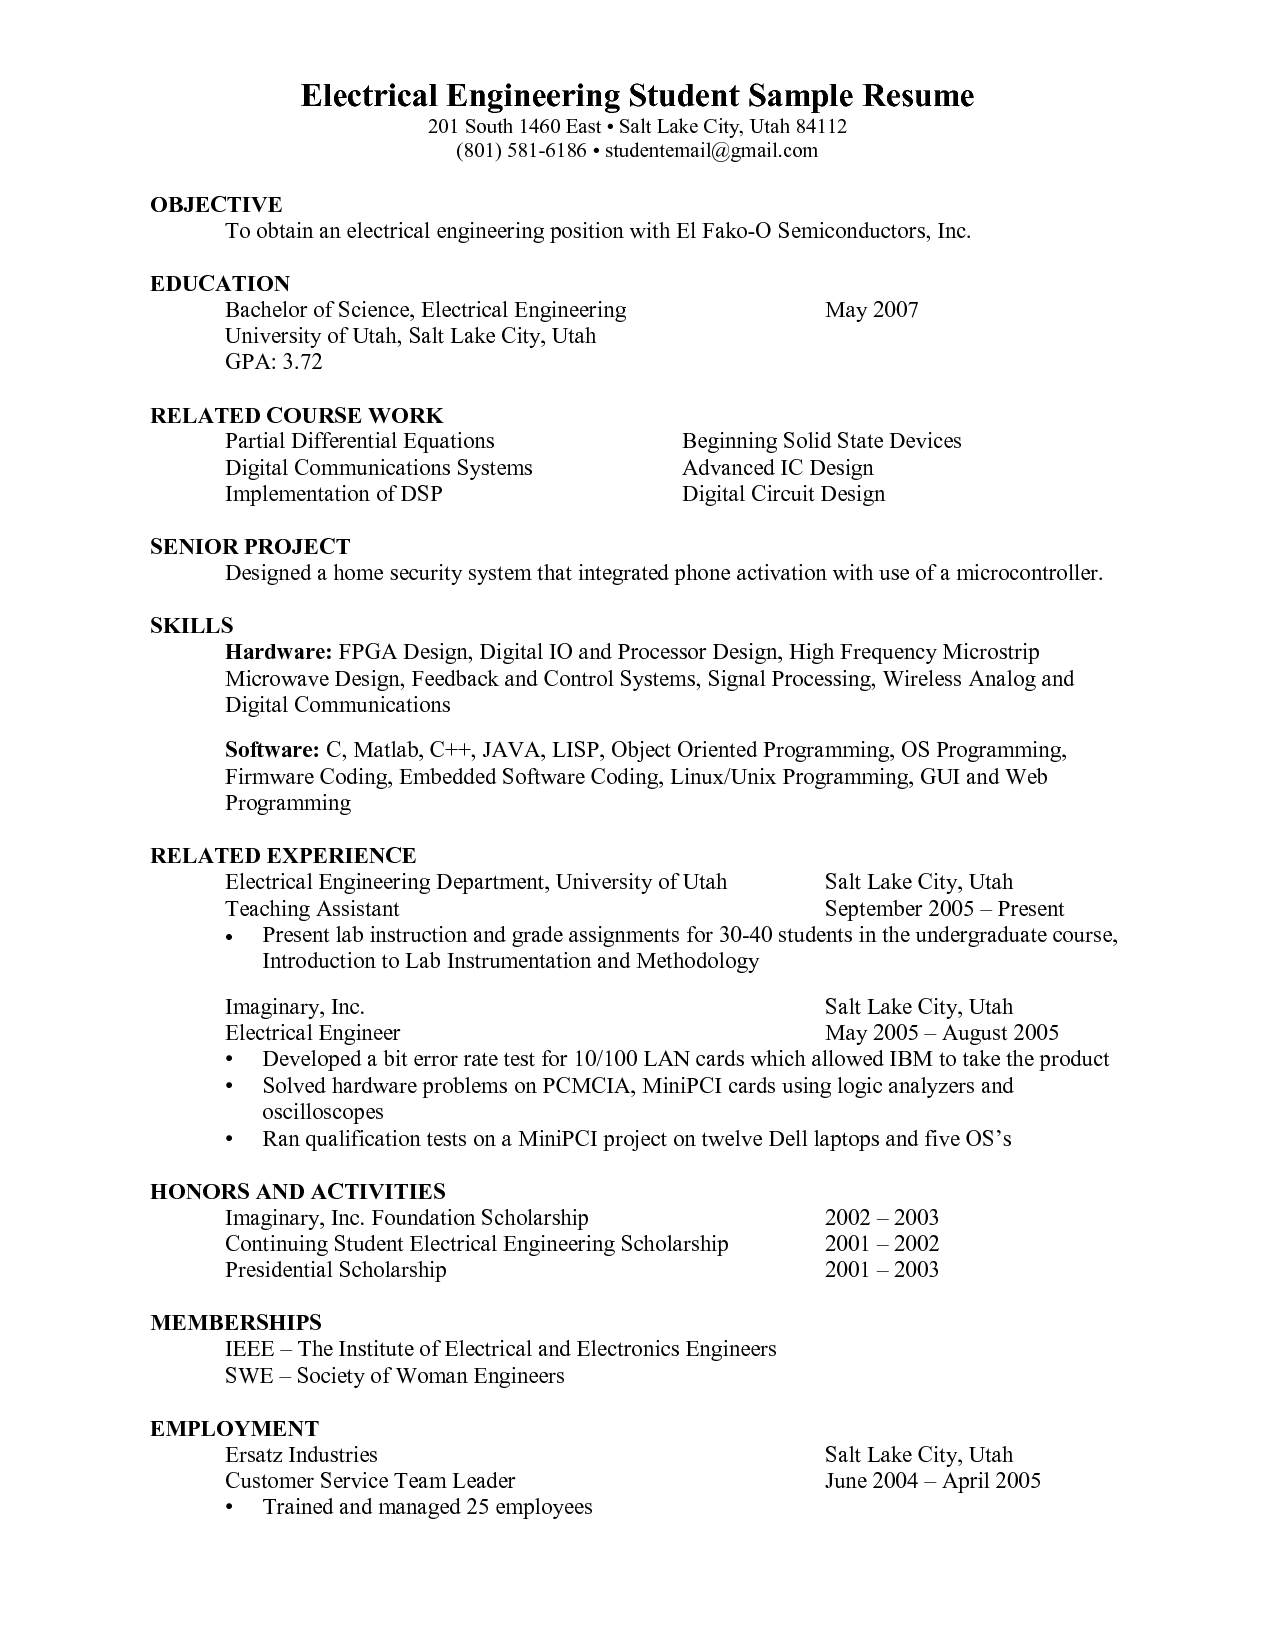 engineering student resume Google Search Resumes